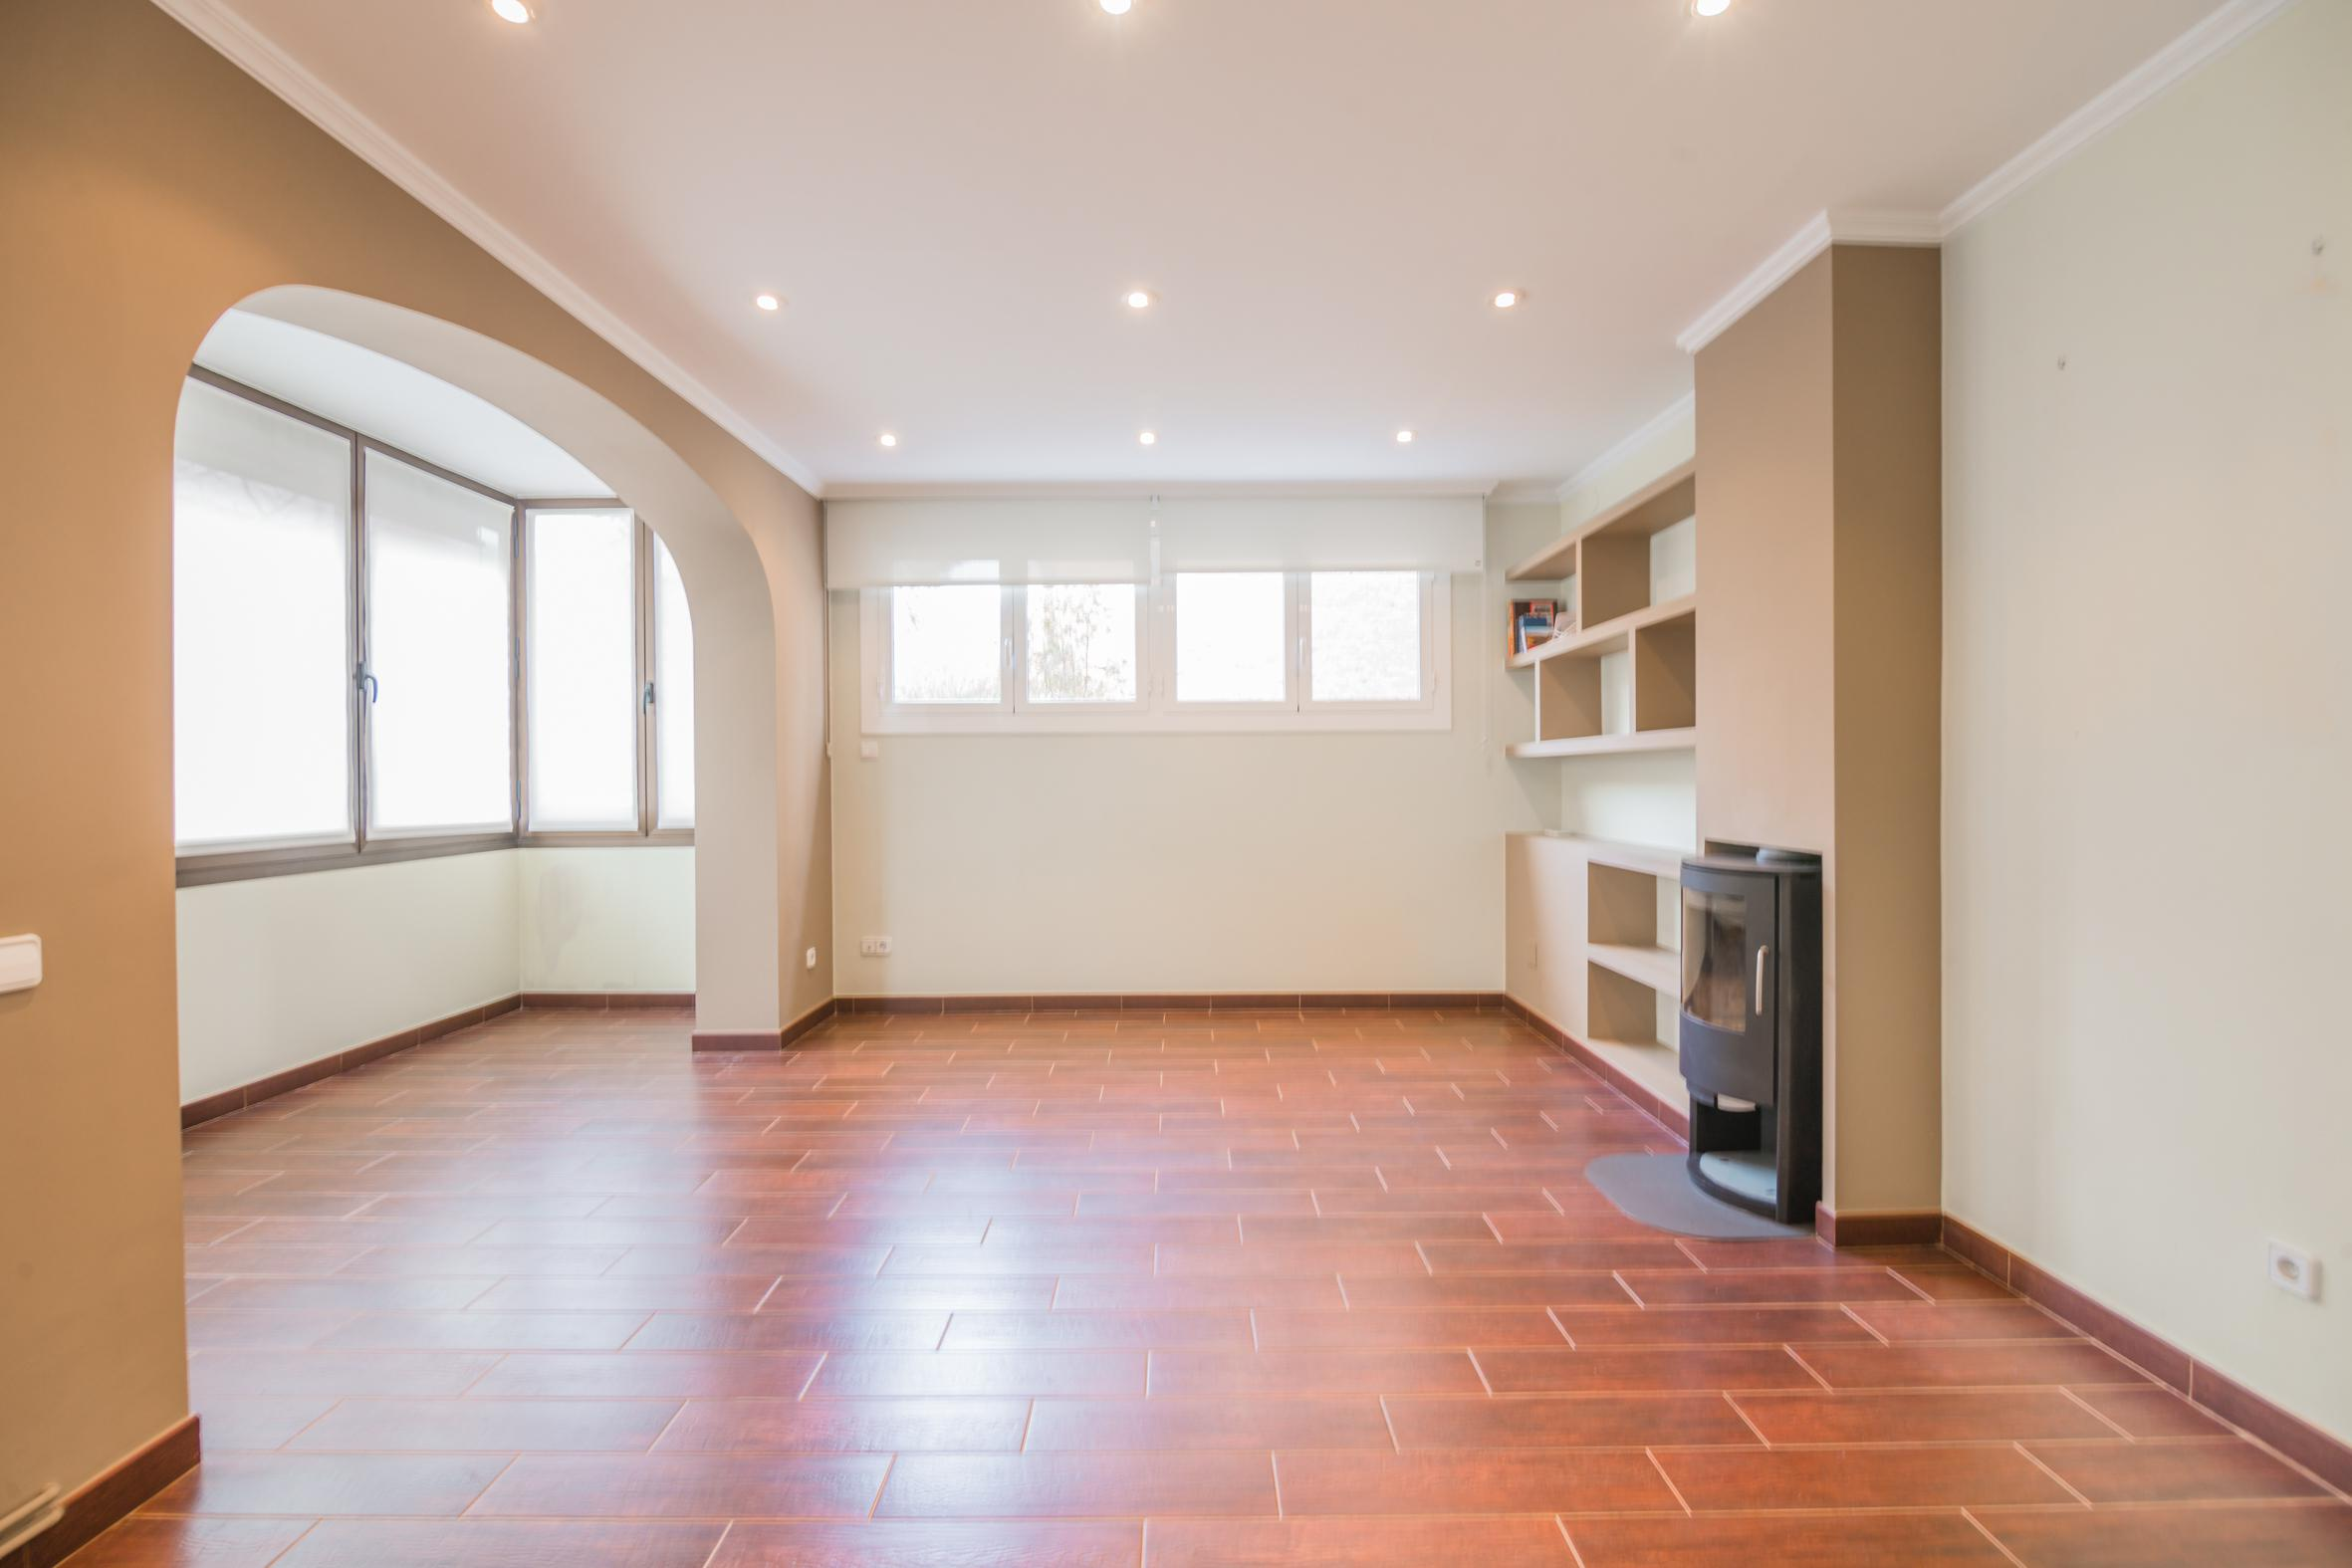 246902 Flat for sale in Les Corts, Pedralbes 7